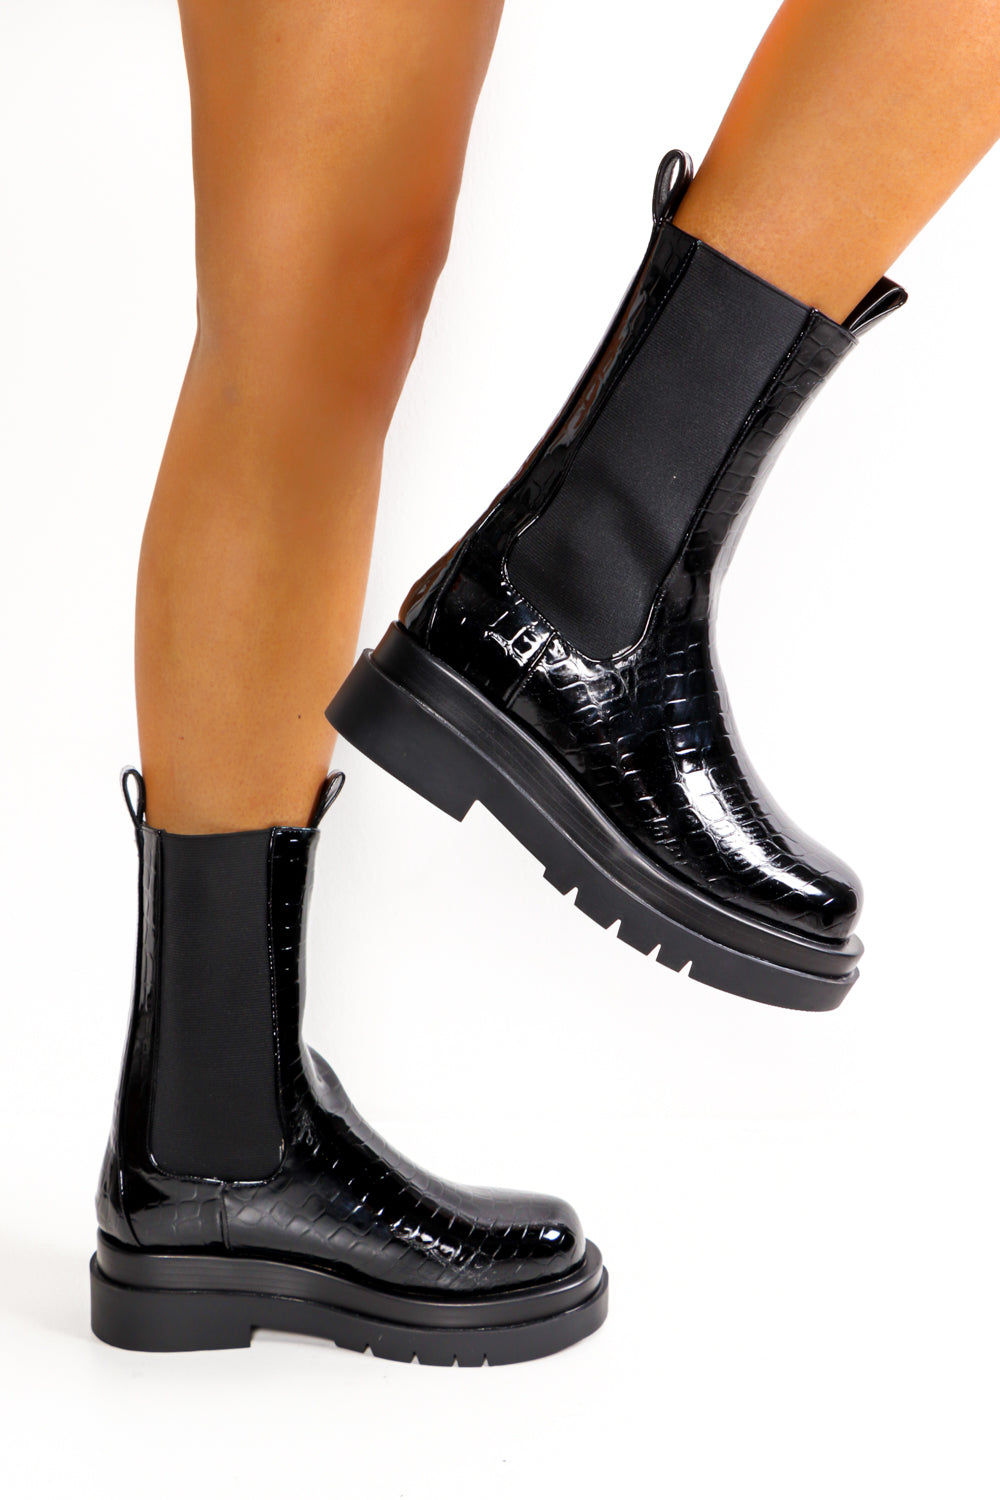 Ride And Glory - Black Croc Patent Mid Calf Boot